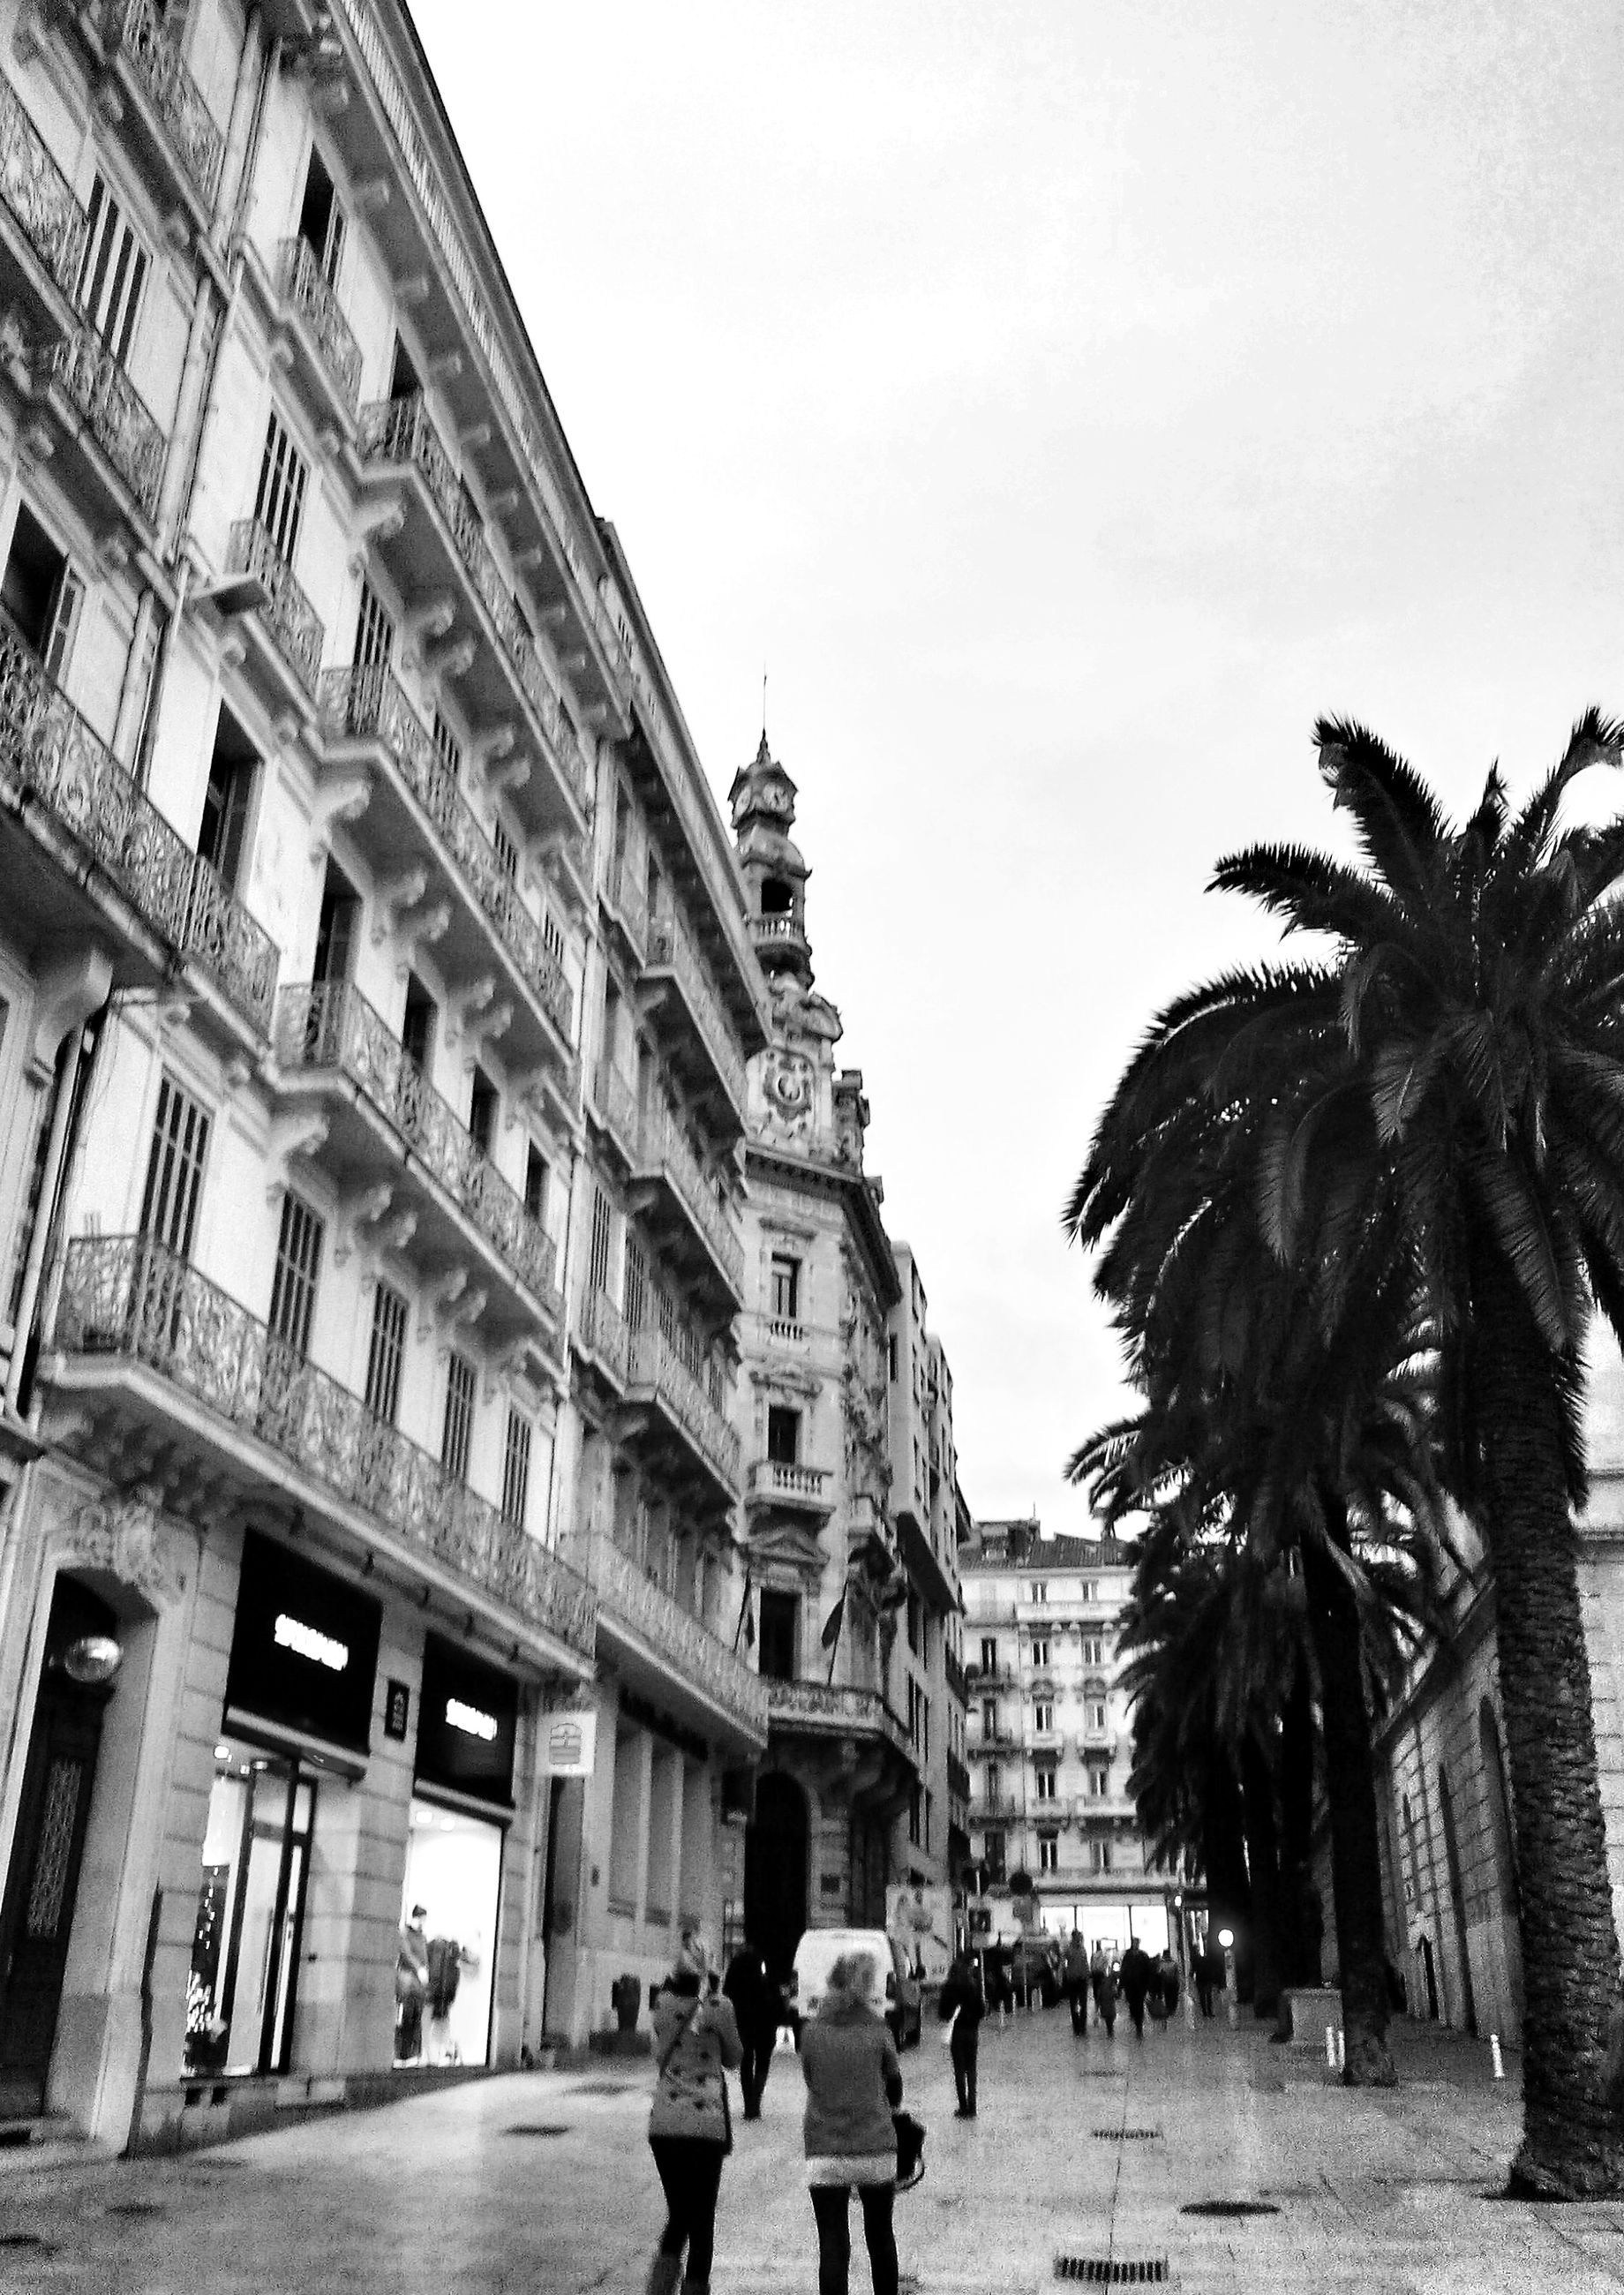 architecture, building exterior, built structure, men, lifestyles, person, walking, city, leisure activity, city life, street, building, sky, low angle view, large group of people, outdoors, palm tree, tree, day